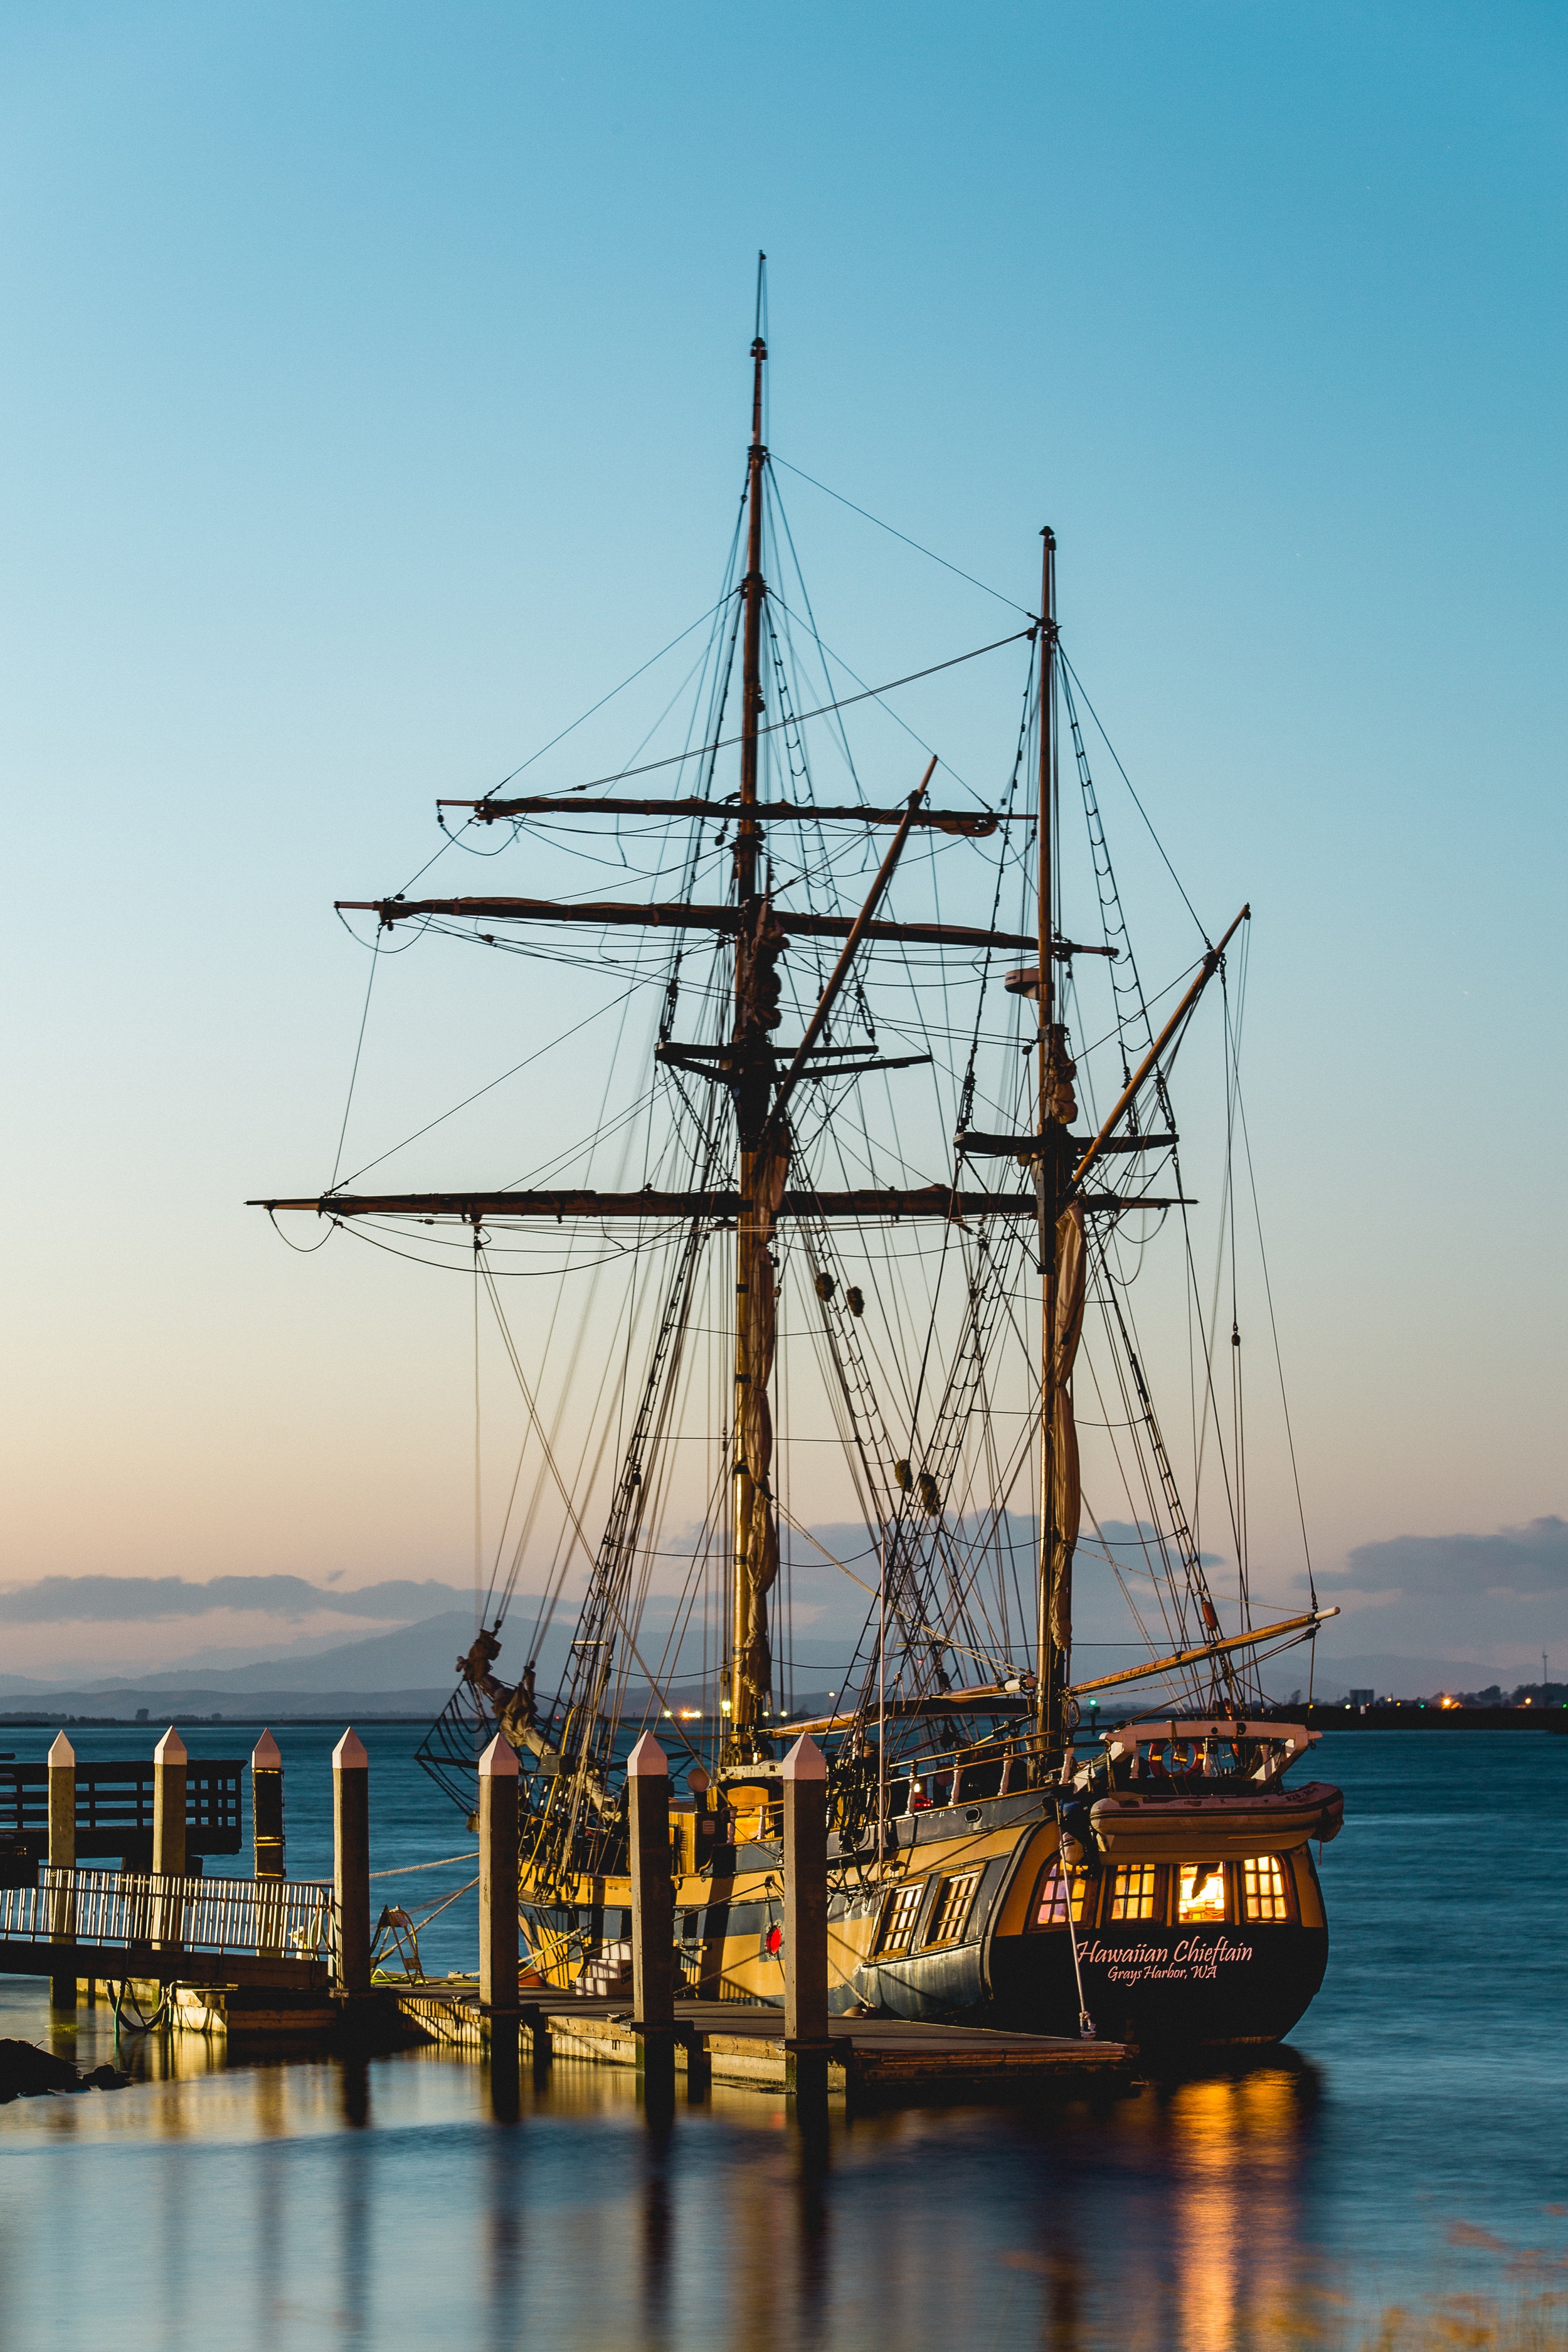 The Hawaiin Chieftain Docked at the Antioch Marina behind the Humphry's building, facing north-west. Image taken on October 2nd, 2016 at 7:22pm by Michael Pohl.